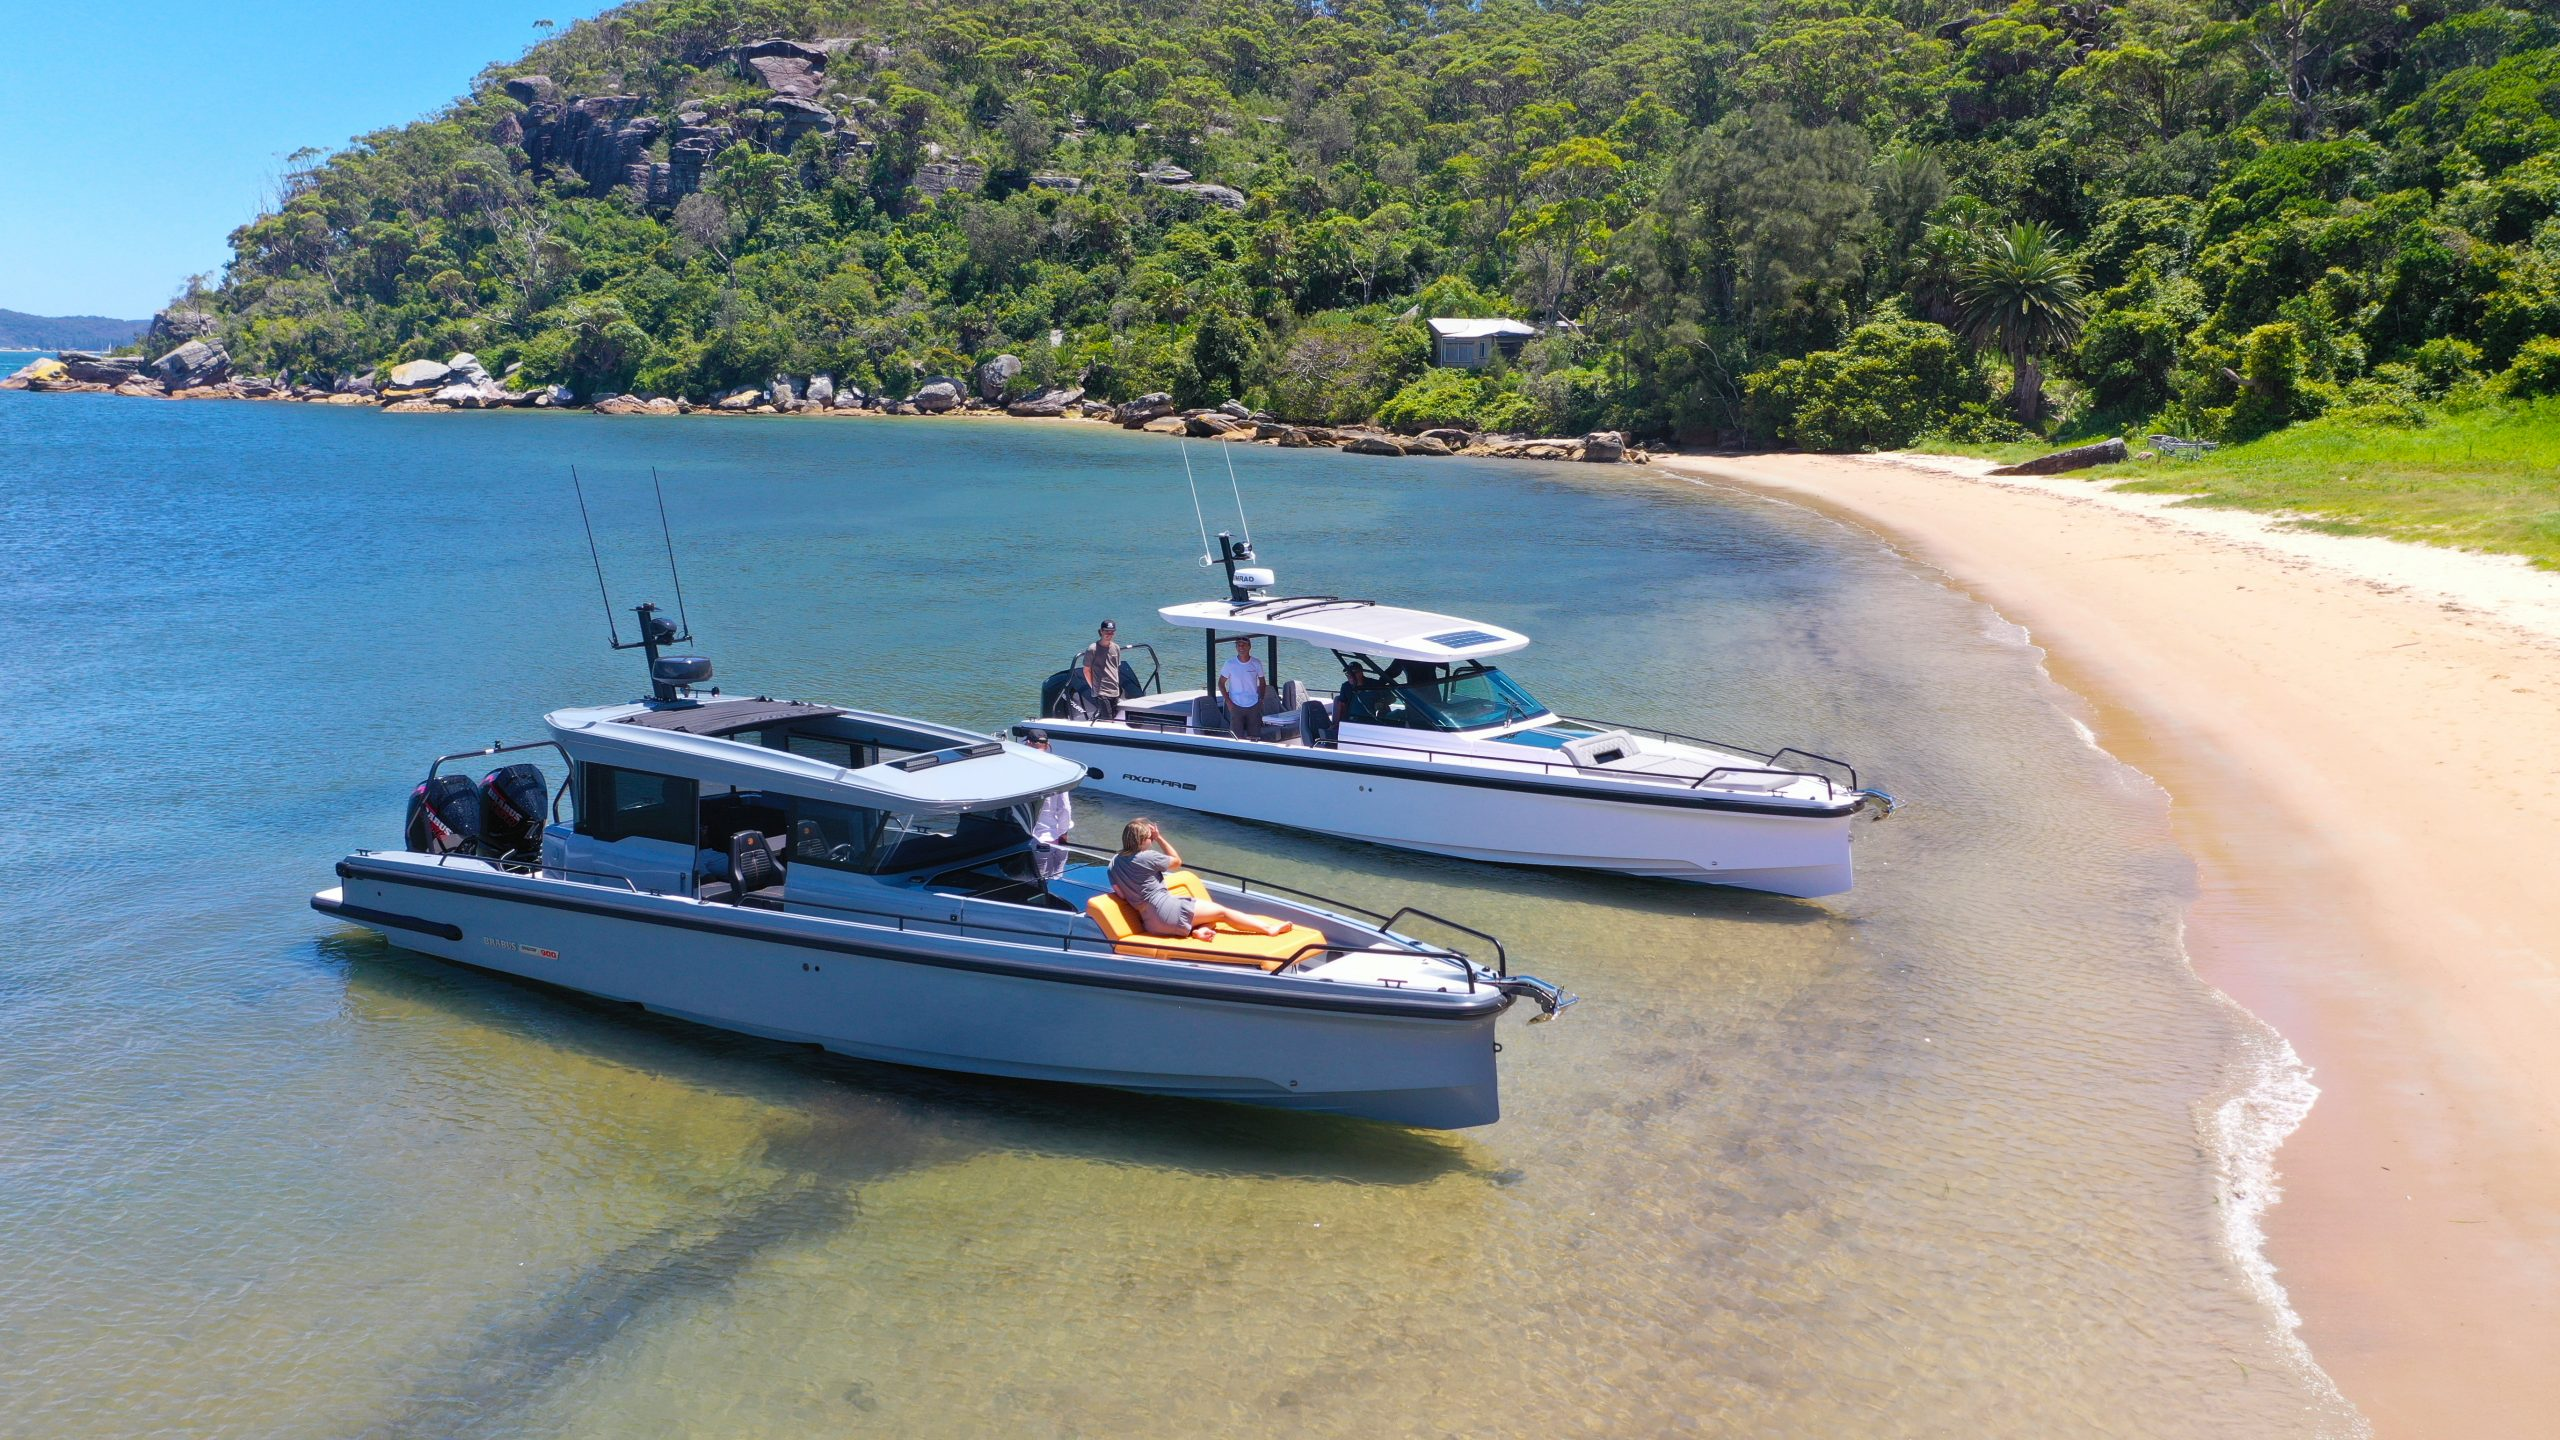 Sydney Boat Show 2021